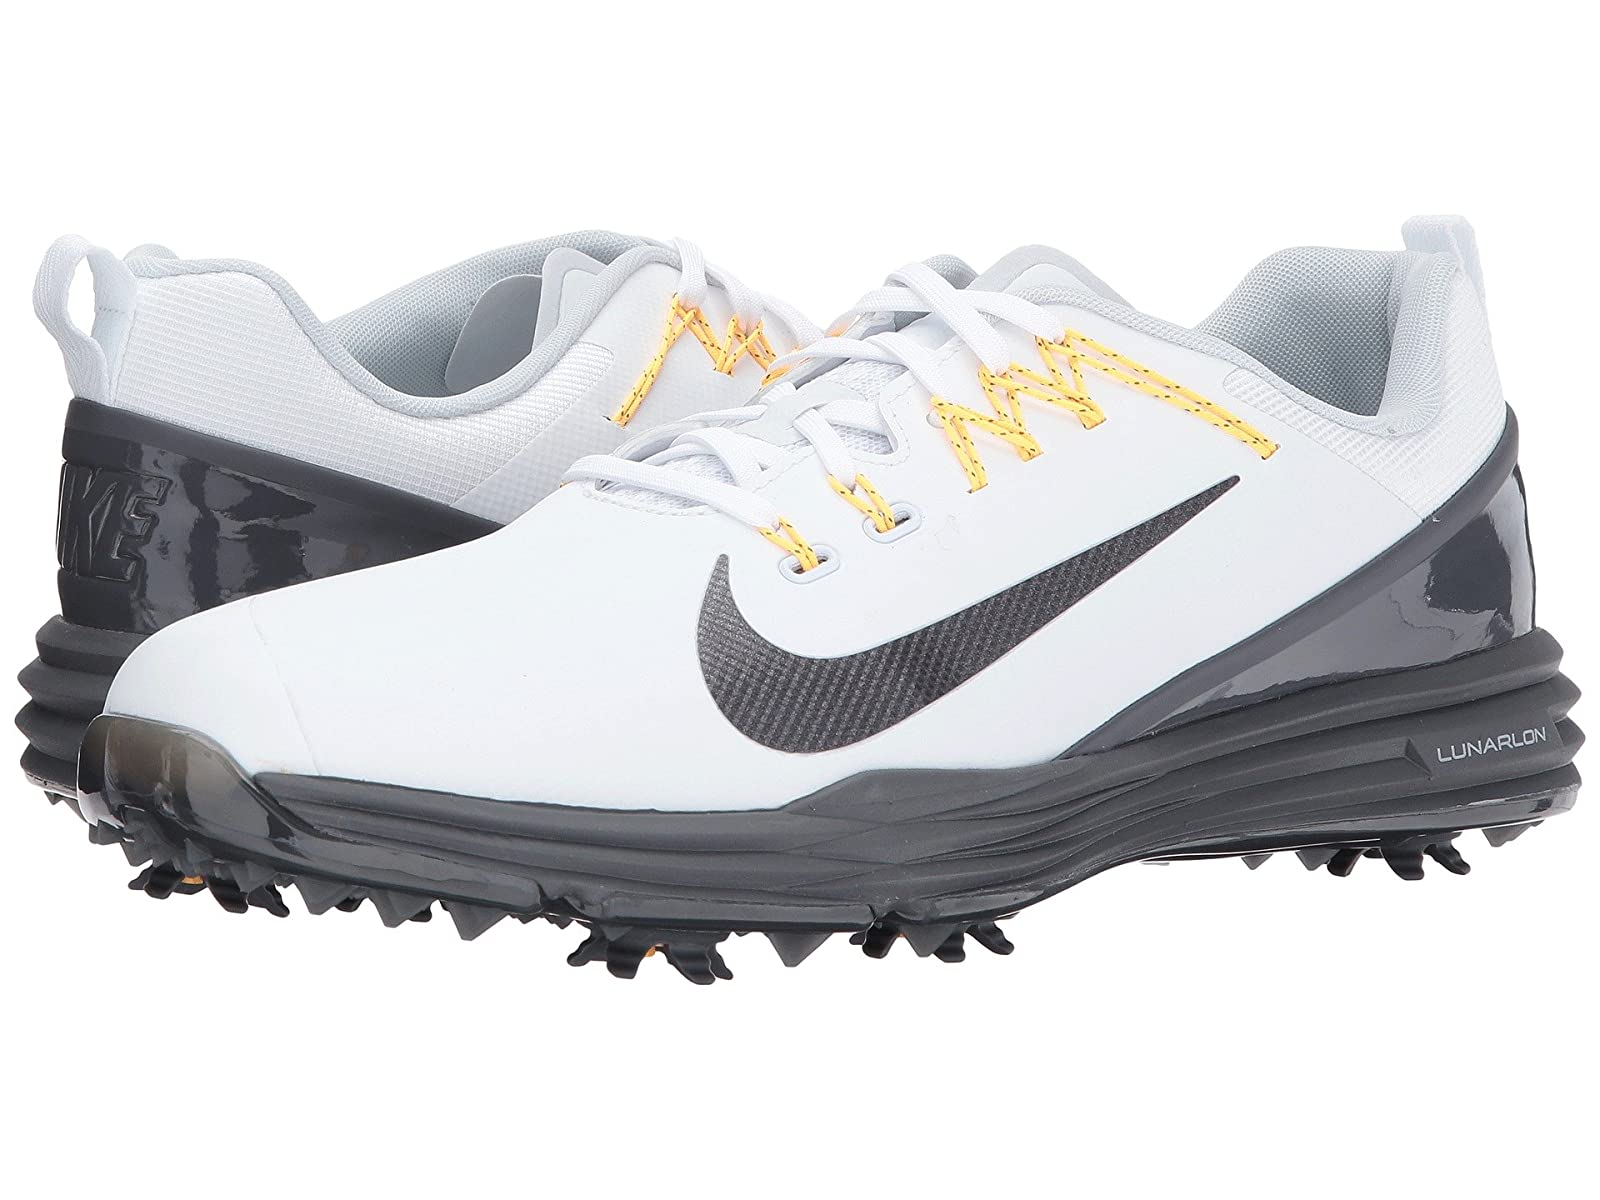 Nike Golf Lunar Command 2Cheap and distinctive eye-catching shoes